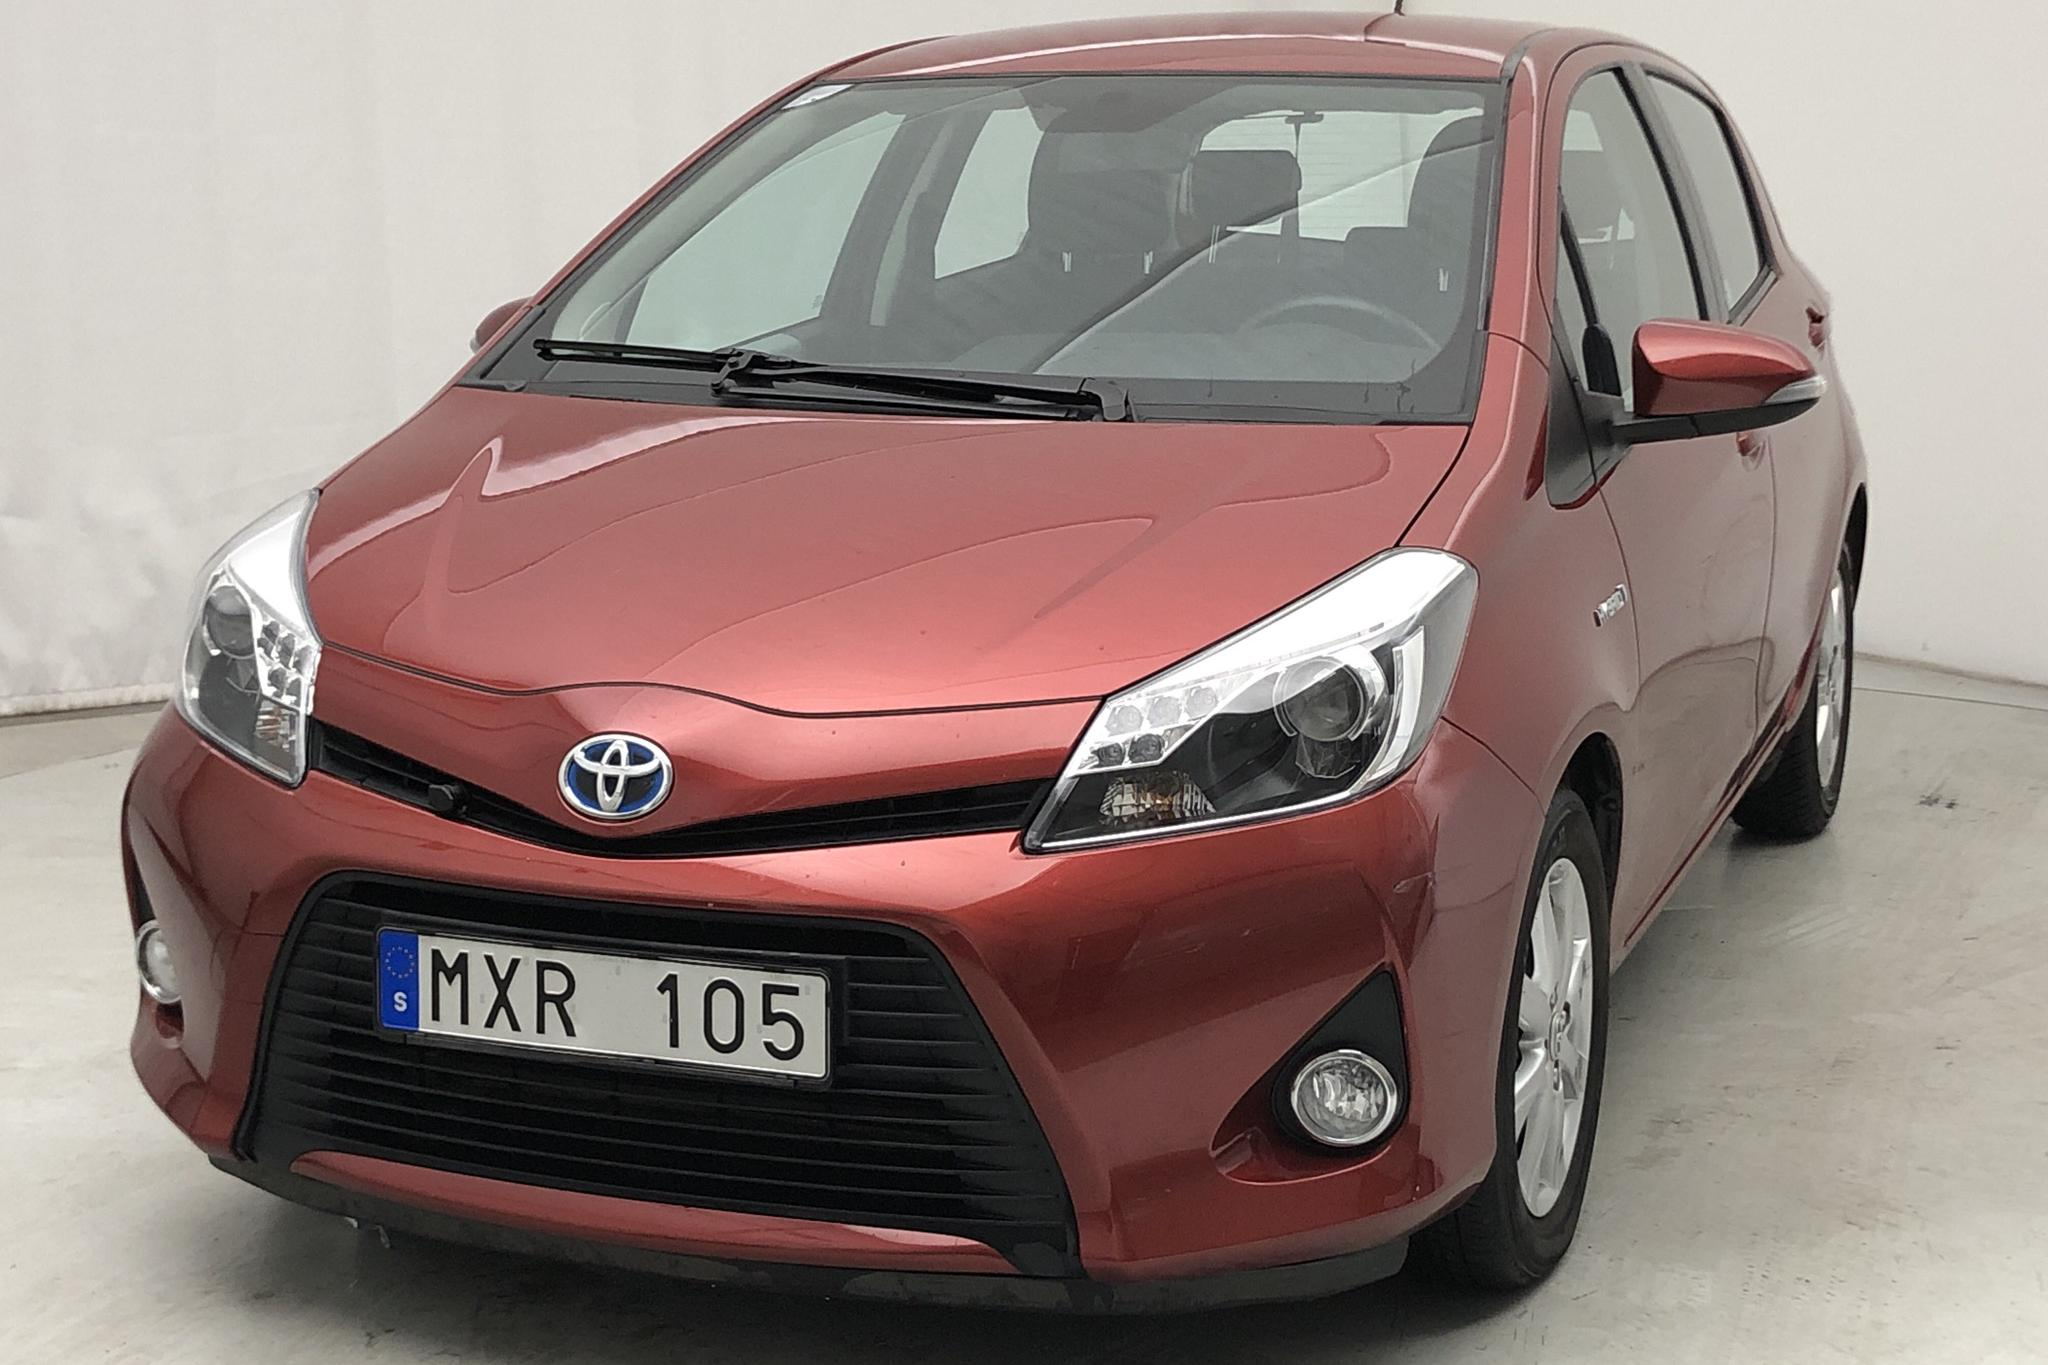 Toyota Yaris 1.5 HSD 5dr (75hk) - 61 000 km - Automatic - red - 2013